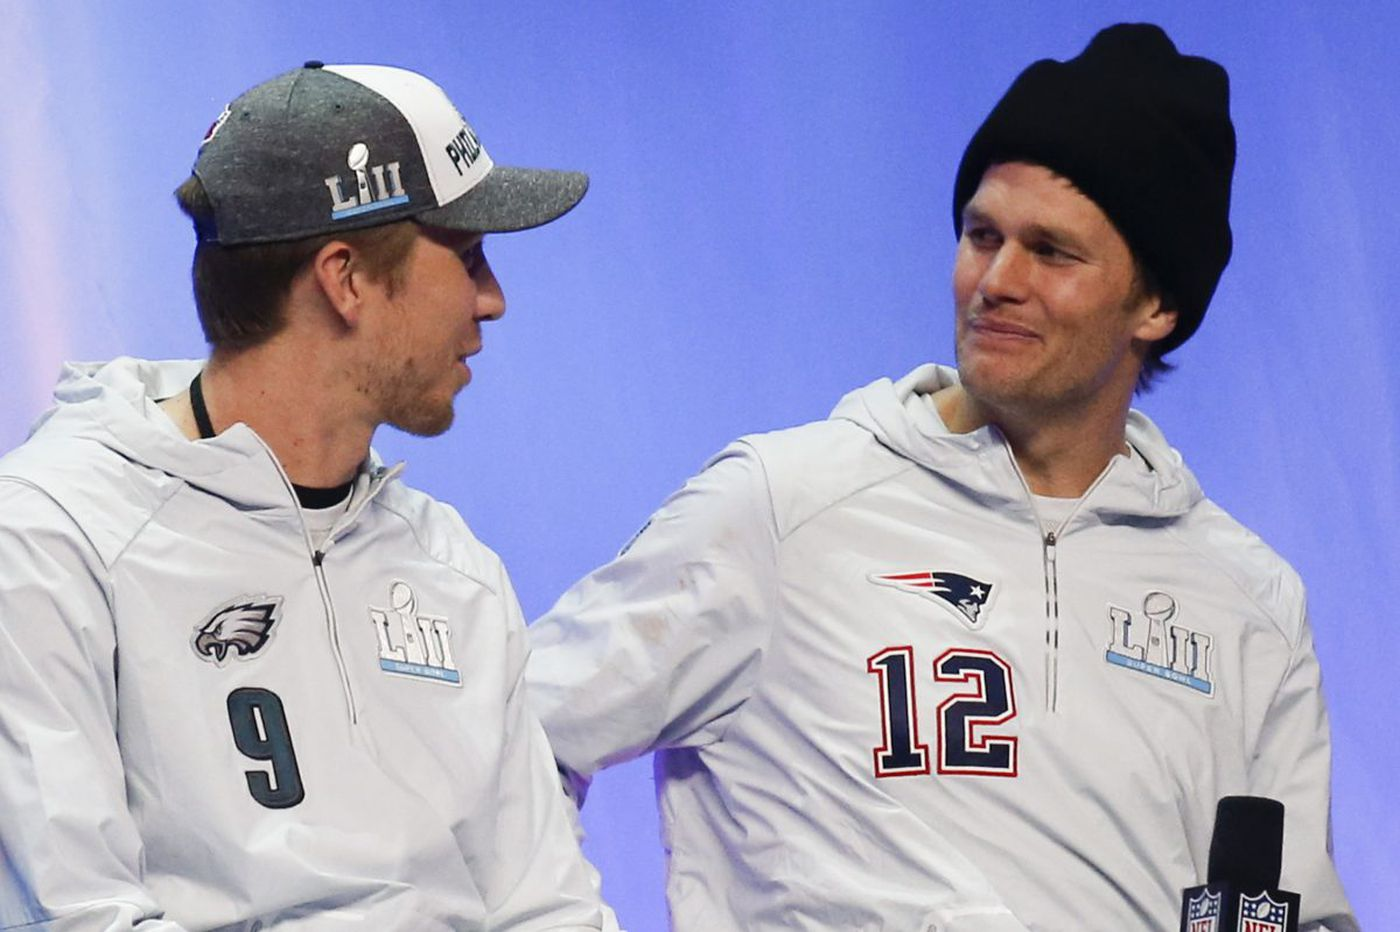 Eagles-Patriots Super Bowl LII scouting report | Paul Domowitch